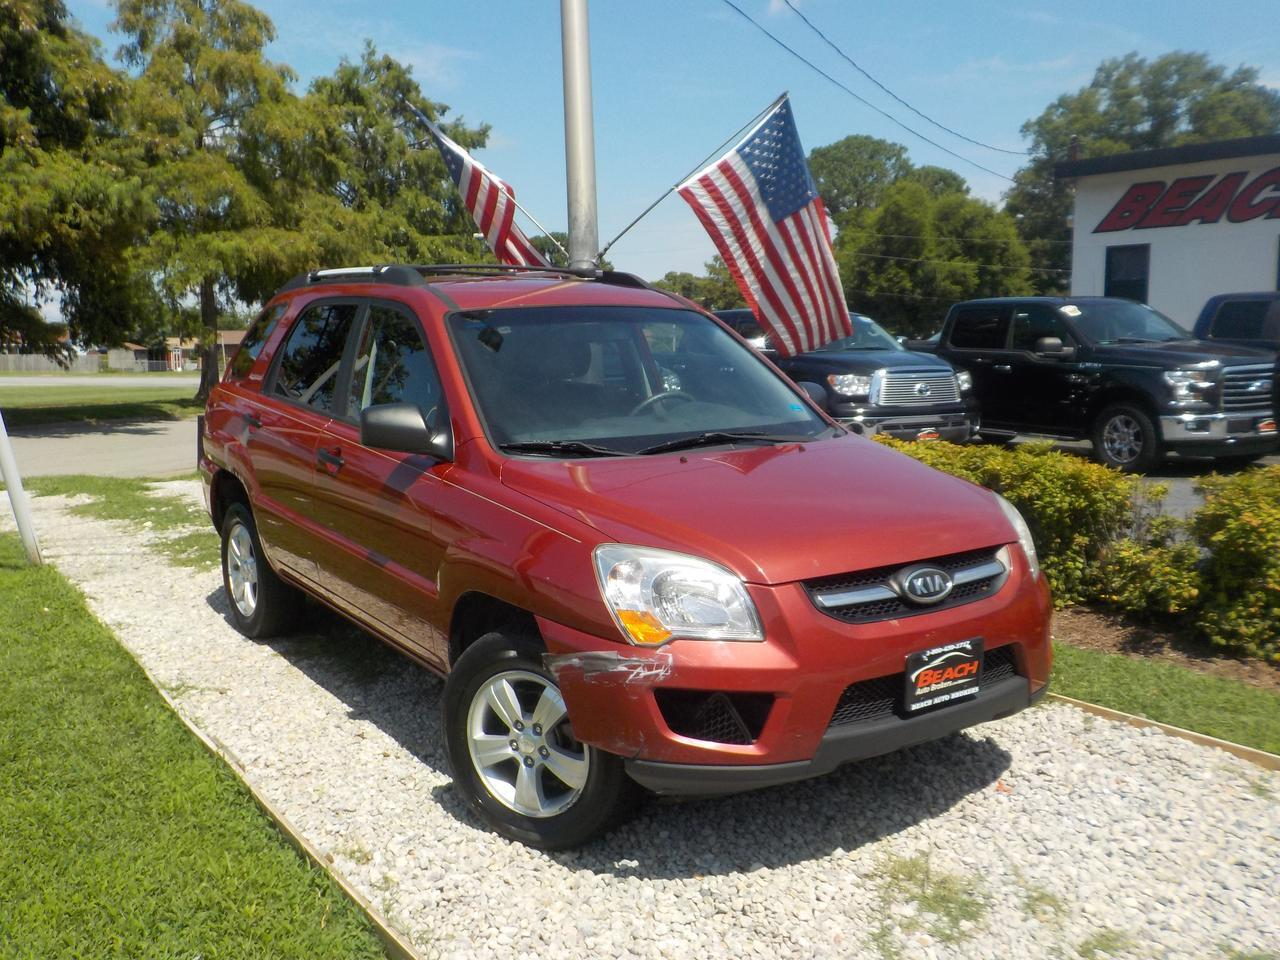 2009 KIA SPORTAGE LX, WHOLESALE TO THE PUBLIC, KEYLESS ENTRY, SAT RADIO, GET IT BEFORE IT GOES TO AUCTION!